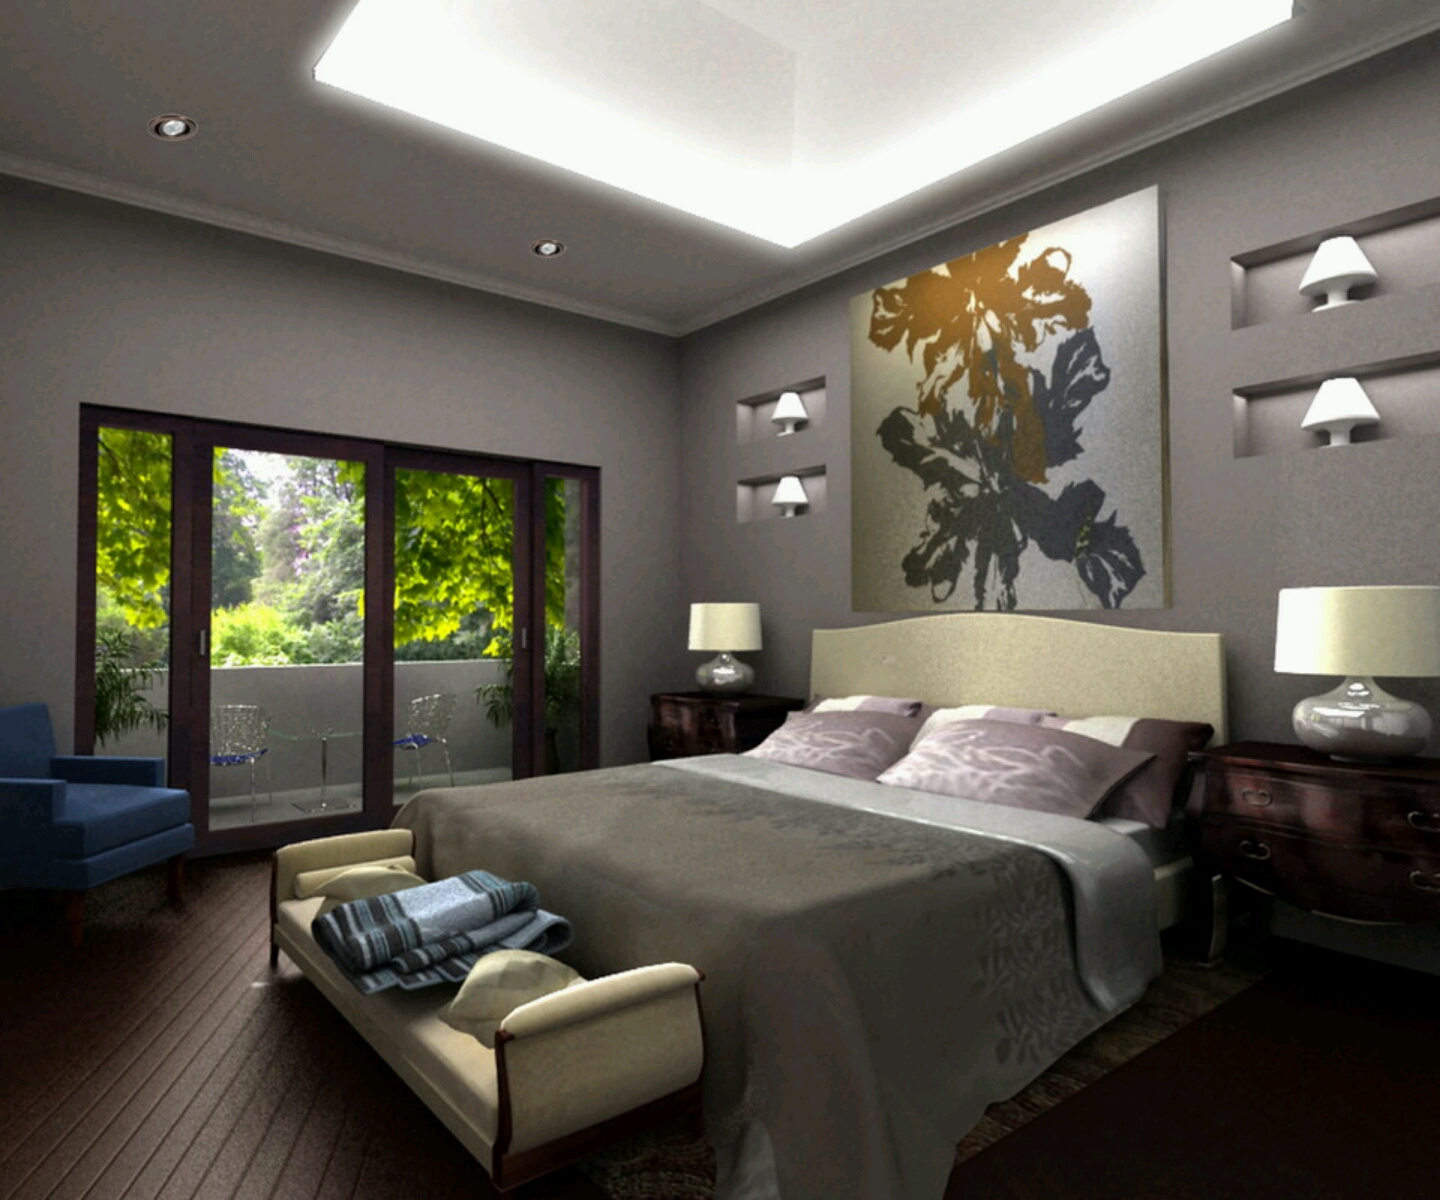 Modern bed designs beautiful bedrooms designs ideas for Beautiful bedroom design hd images